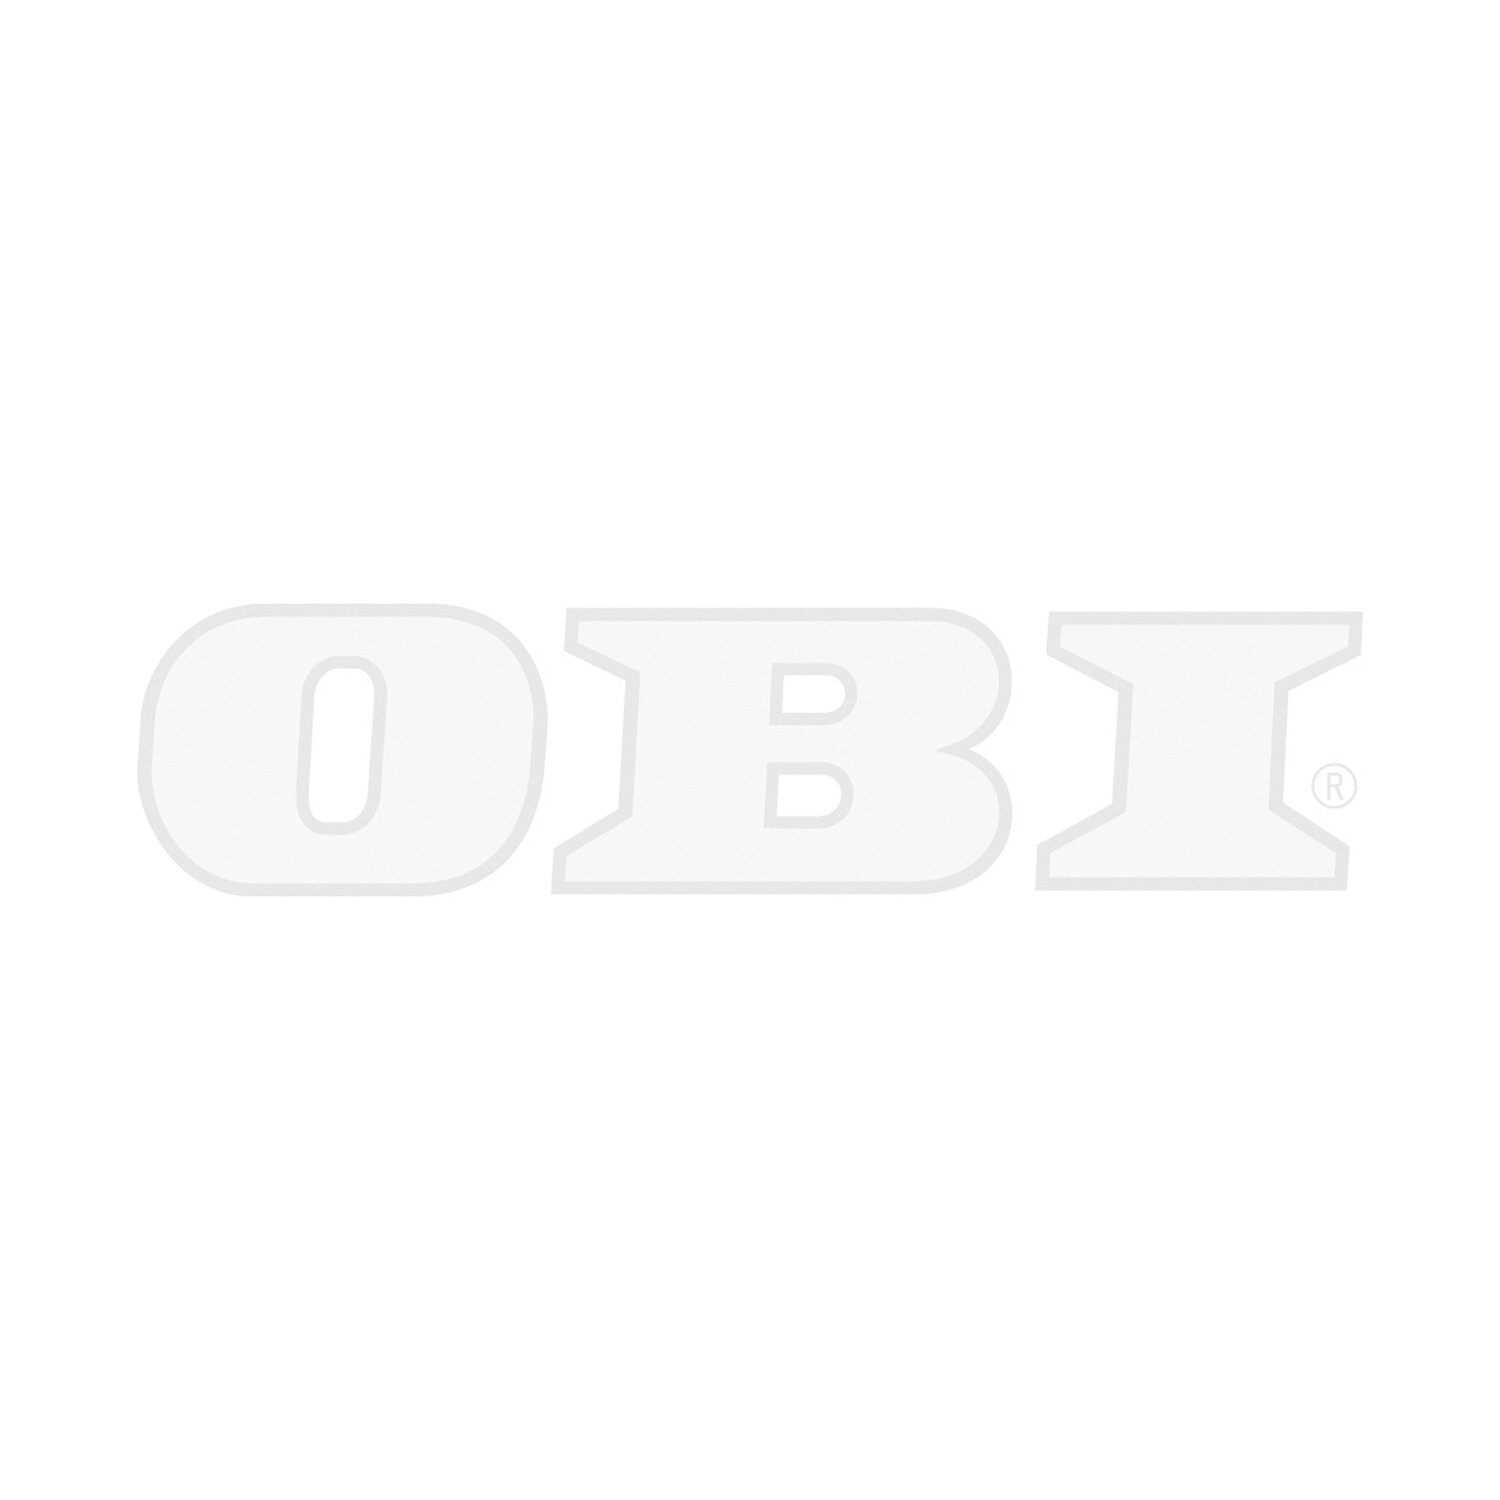 Osram Leuchtstofflampe Stabform T8 G13 / 58 W (5200 lm) Relax ...